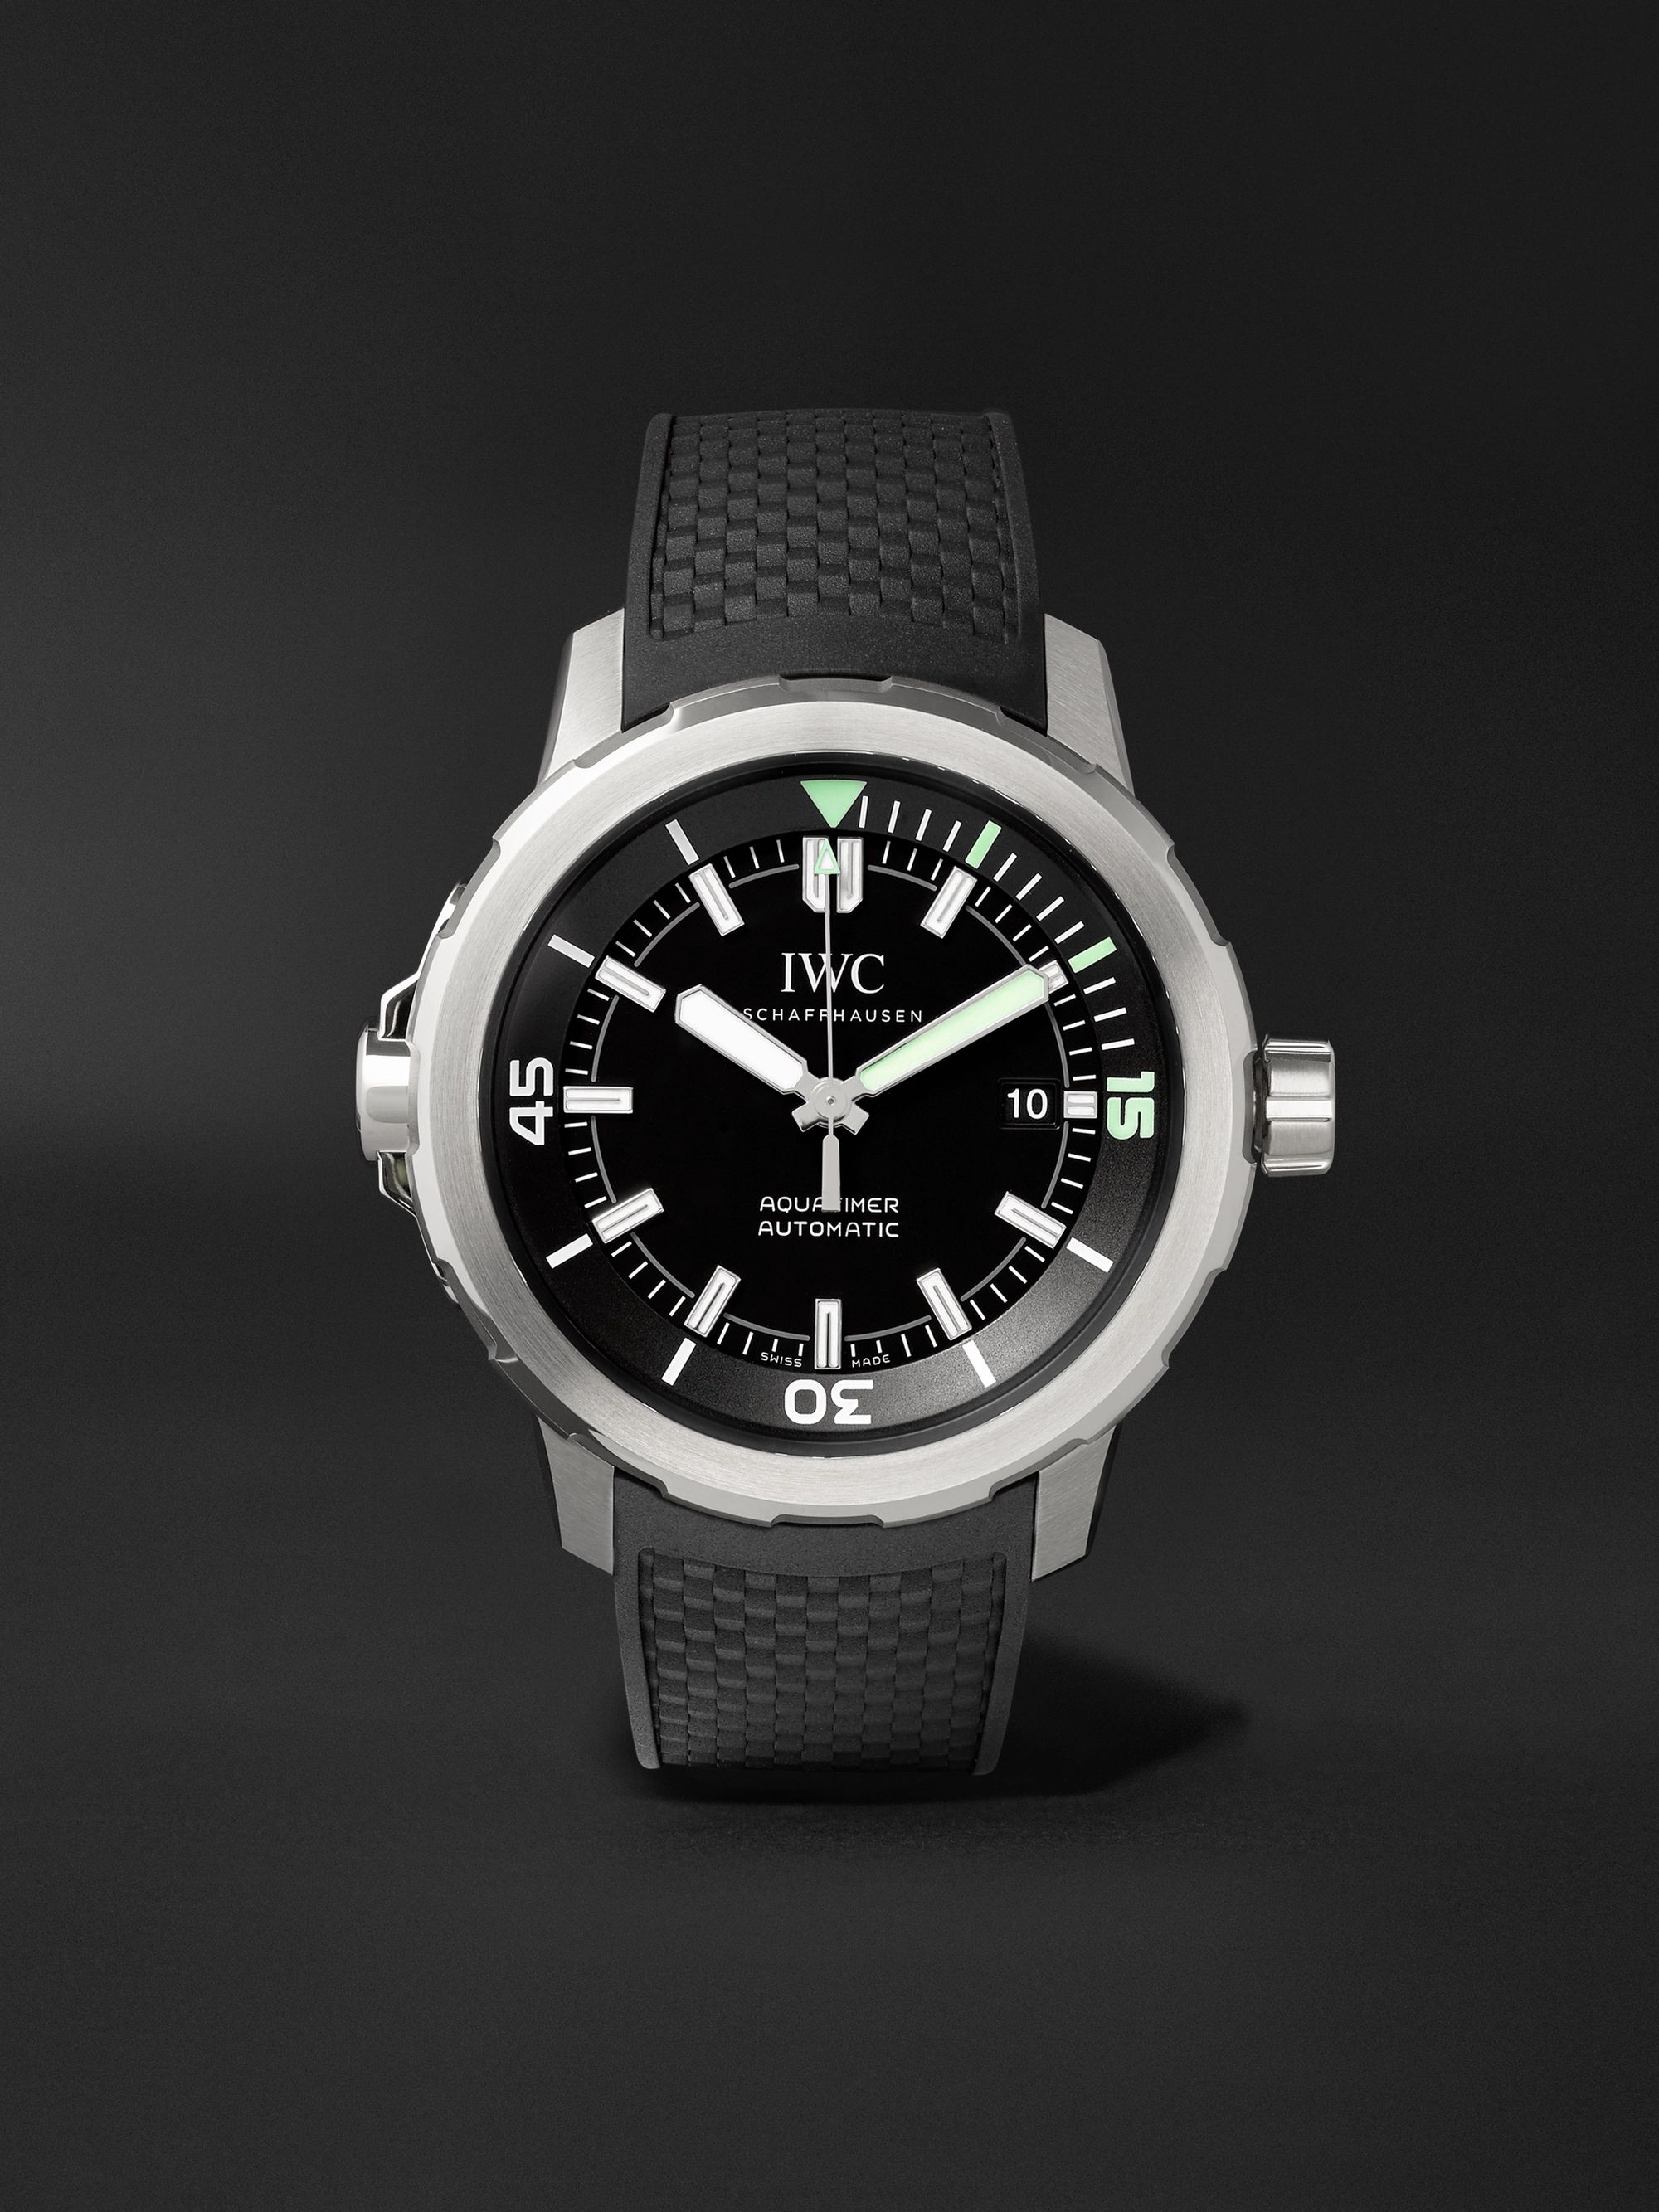 IWC SCHAFFHAUSEN Aquatimer Automatic 42mm Stainless Steel and Rubber Watch, Ref. No. IW329001